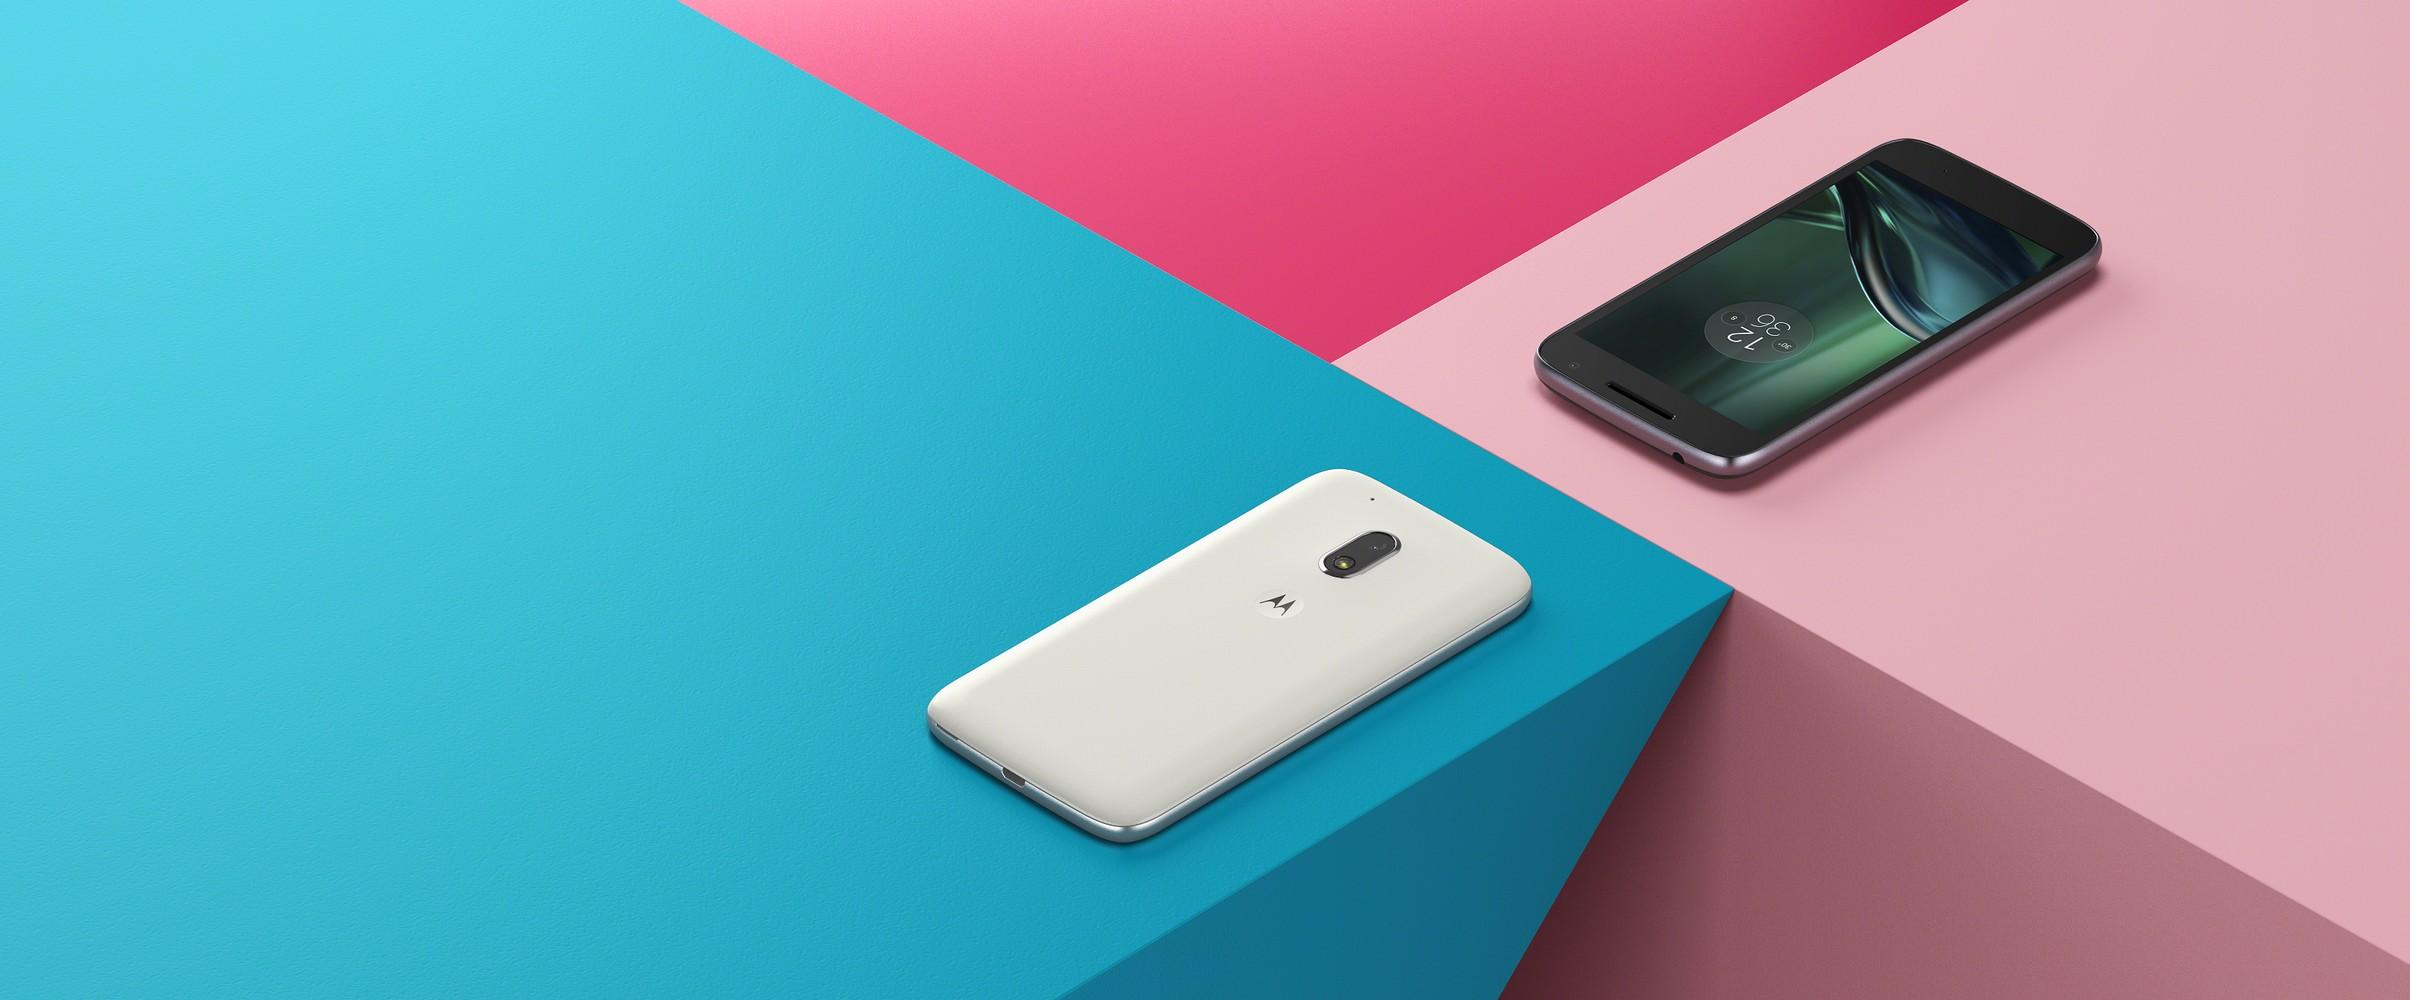 Moto G4 Play gets Android 7.1.1 Nougat Update, Finally! 10